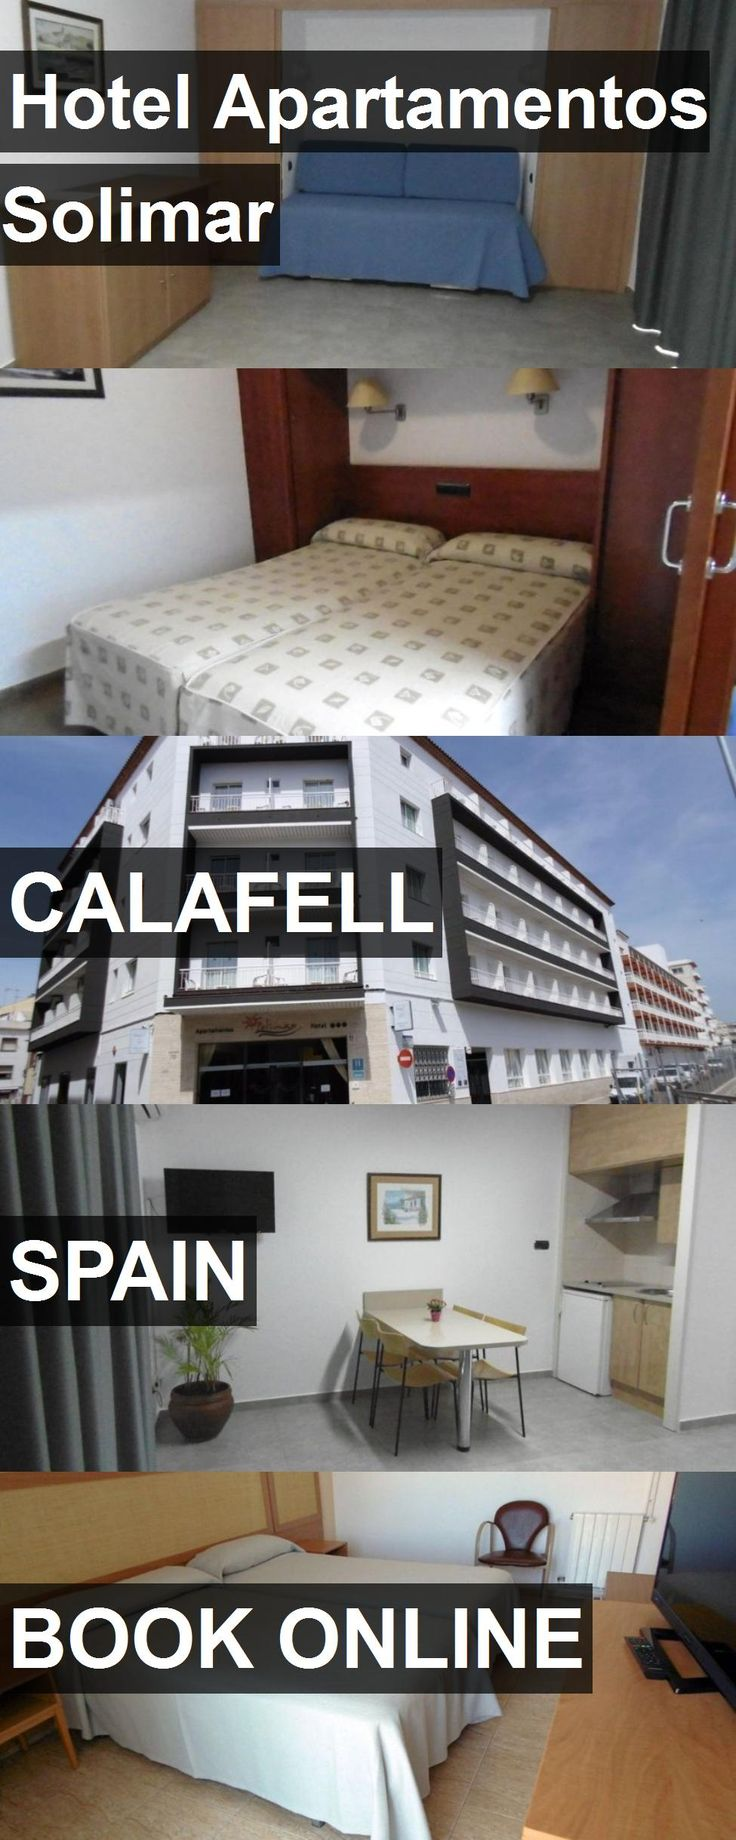 Hotel Hotel Apartamentos Solimar in Calafell, Spain. For more information, photos, reviews and best prices please follow the link. #Spain #Calafell #HotelApartamentosSolimar #hotel #travel #vacation